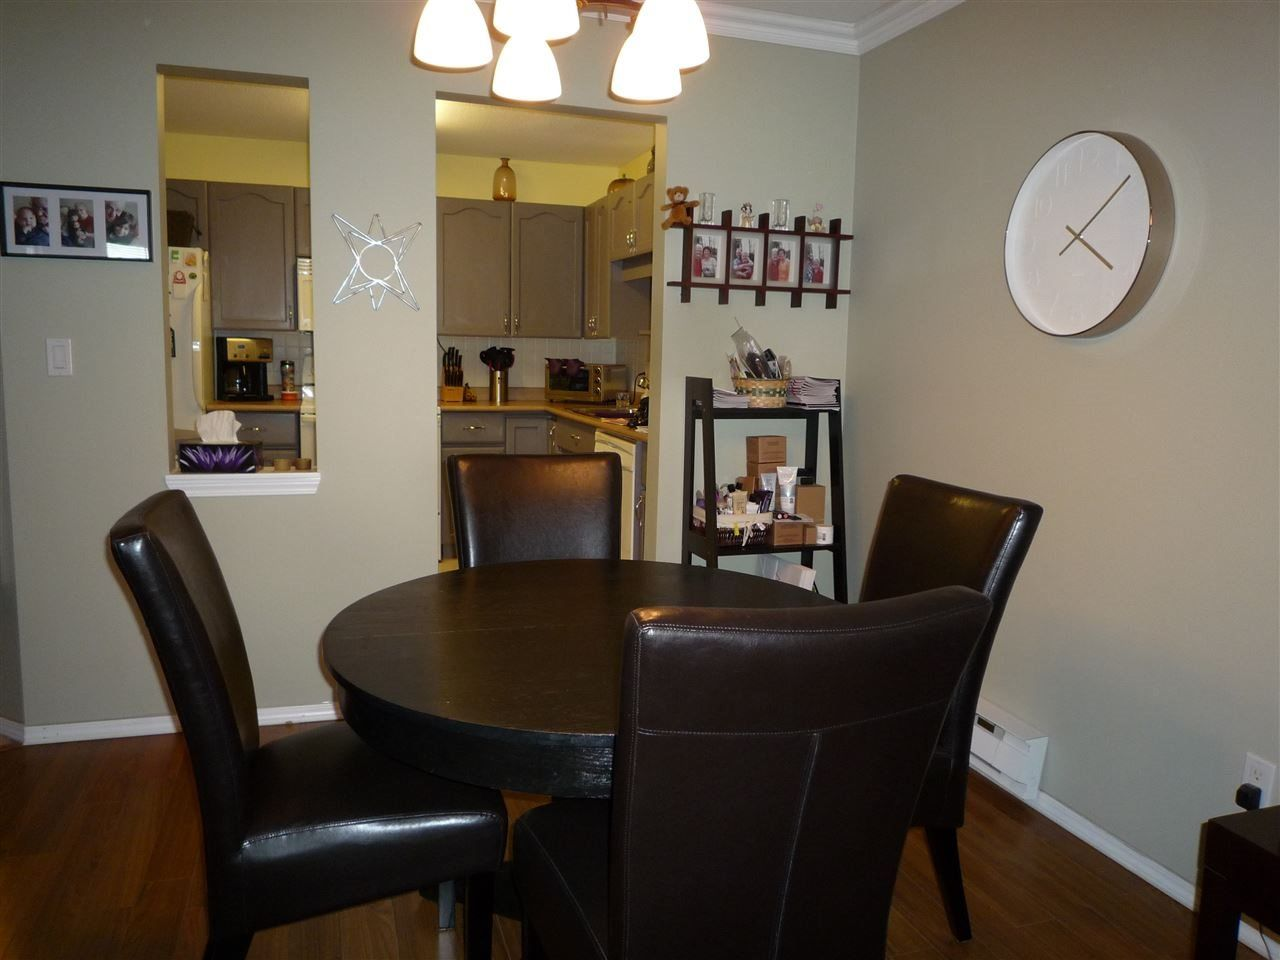 """Photo 7: Photos: 104 9400 COOK Street in Chilliwack: Chilliwack N Yale-Well Condo for sale in """"THE WELLINGTON"""" : MLS®# R2076679"""